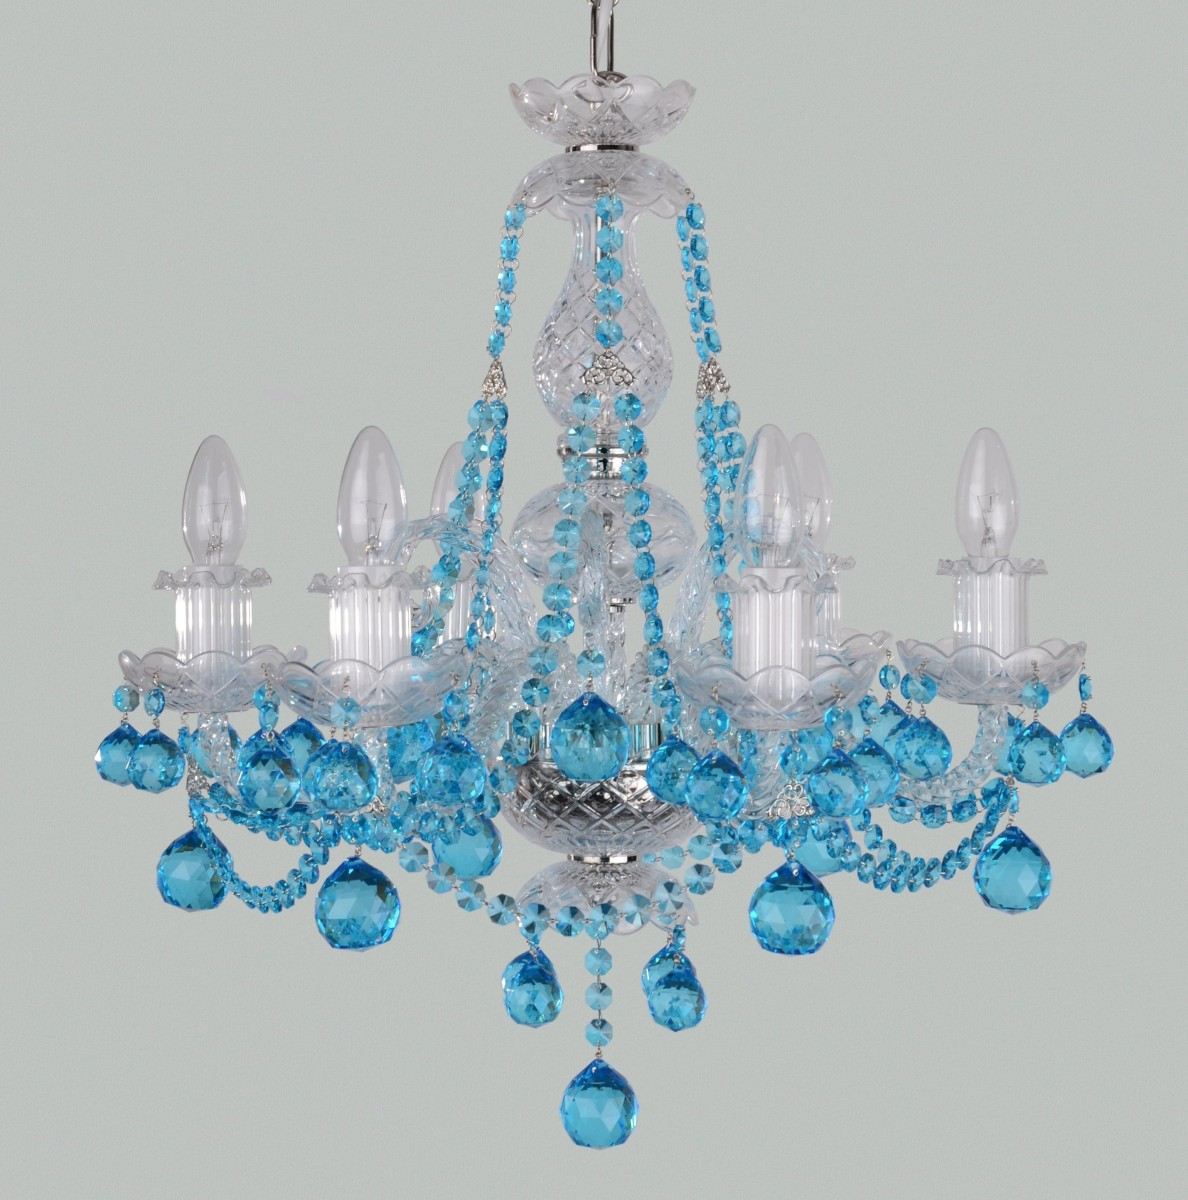 6 Arms Small Blue Crystal Chandelier With Aquamarine Cut